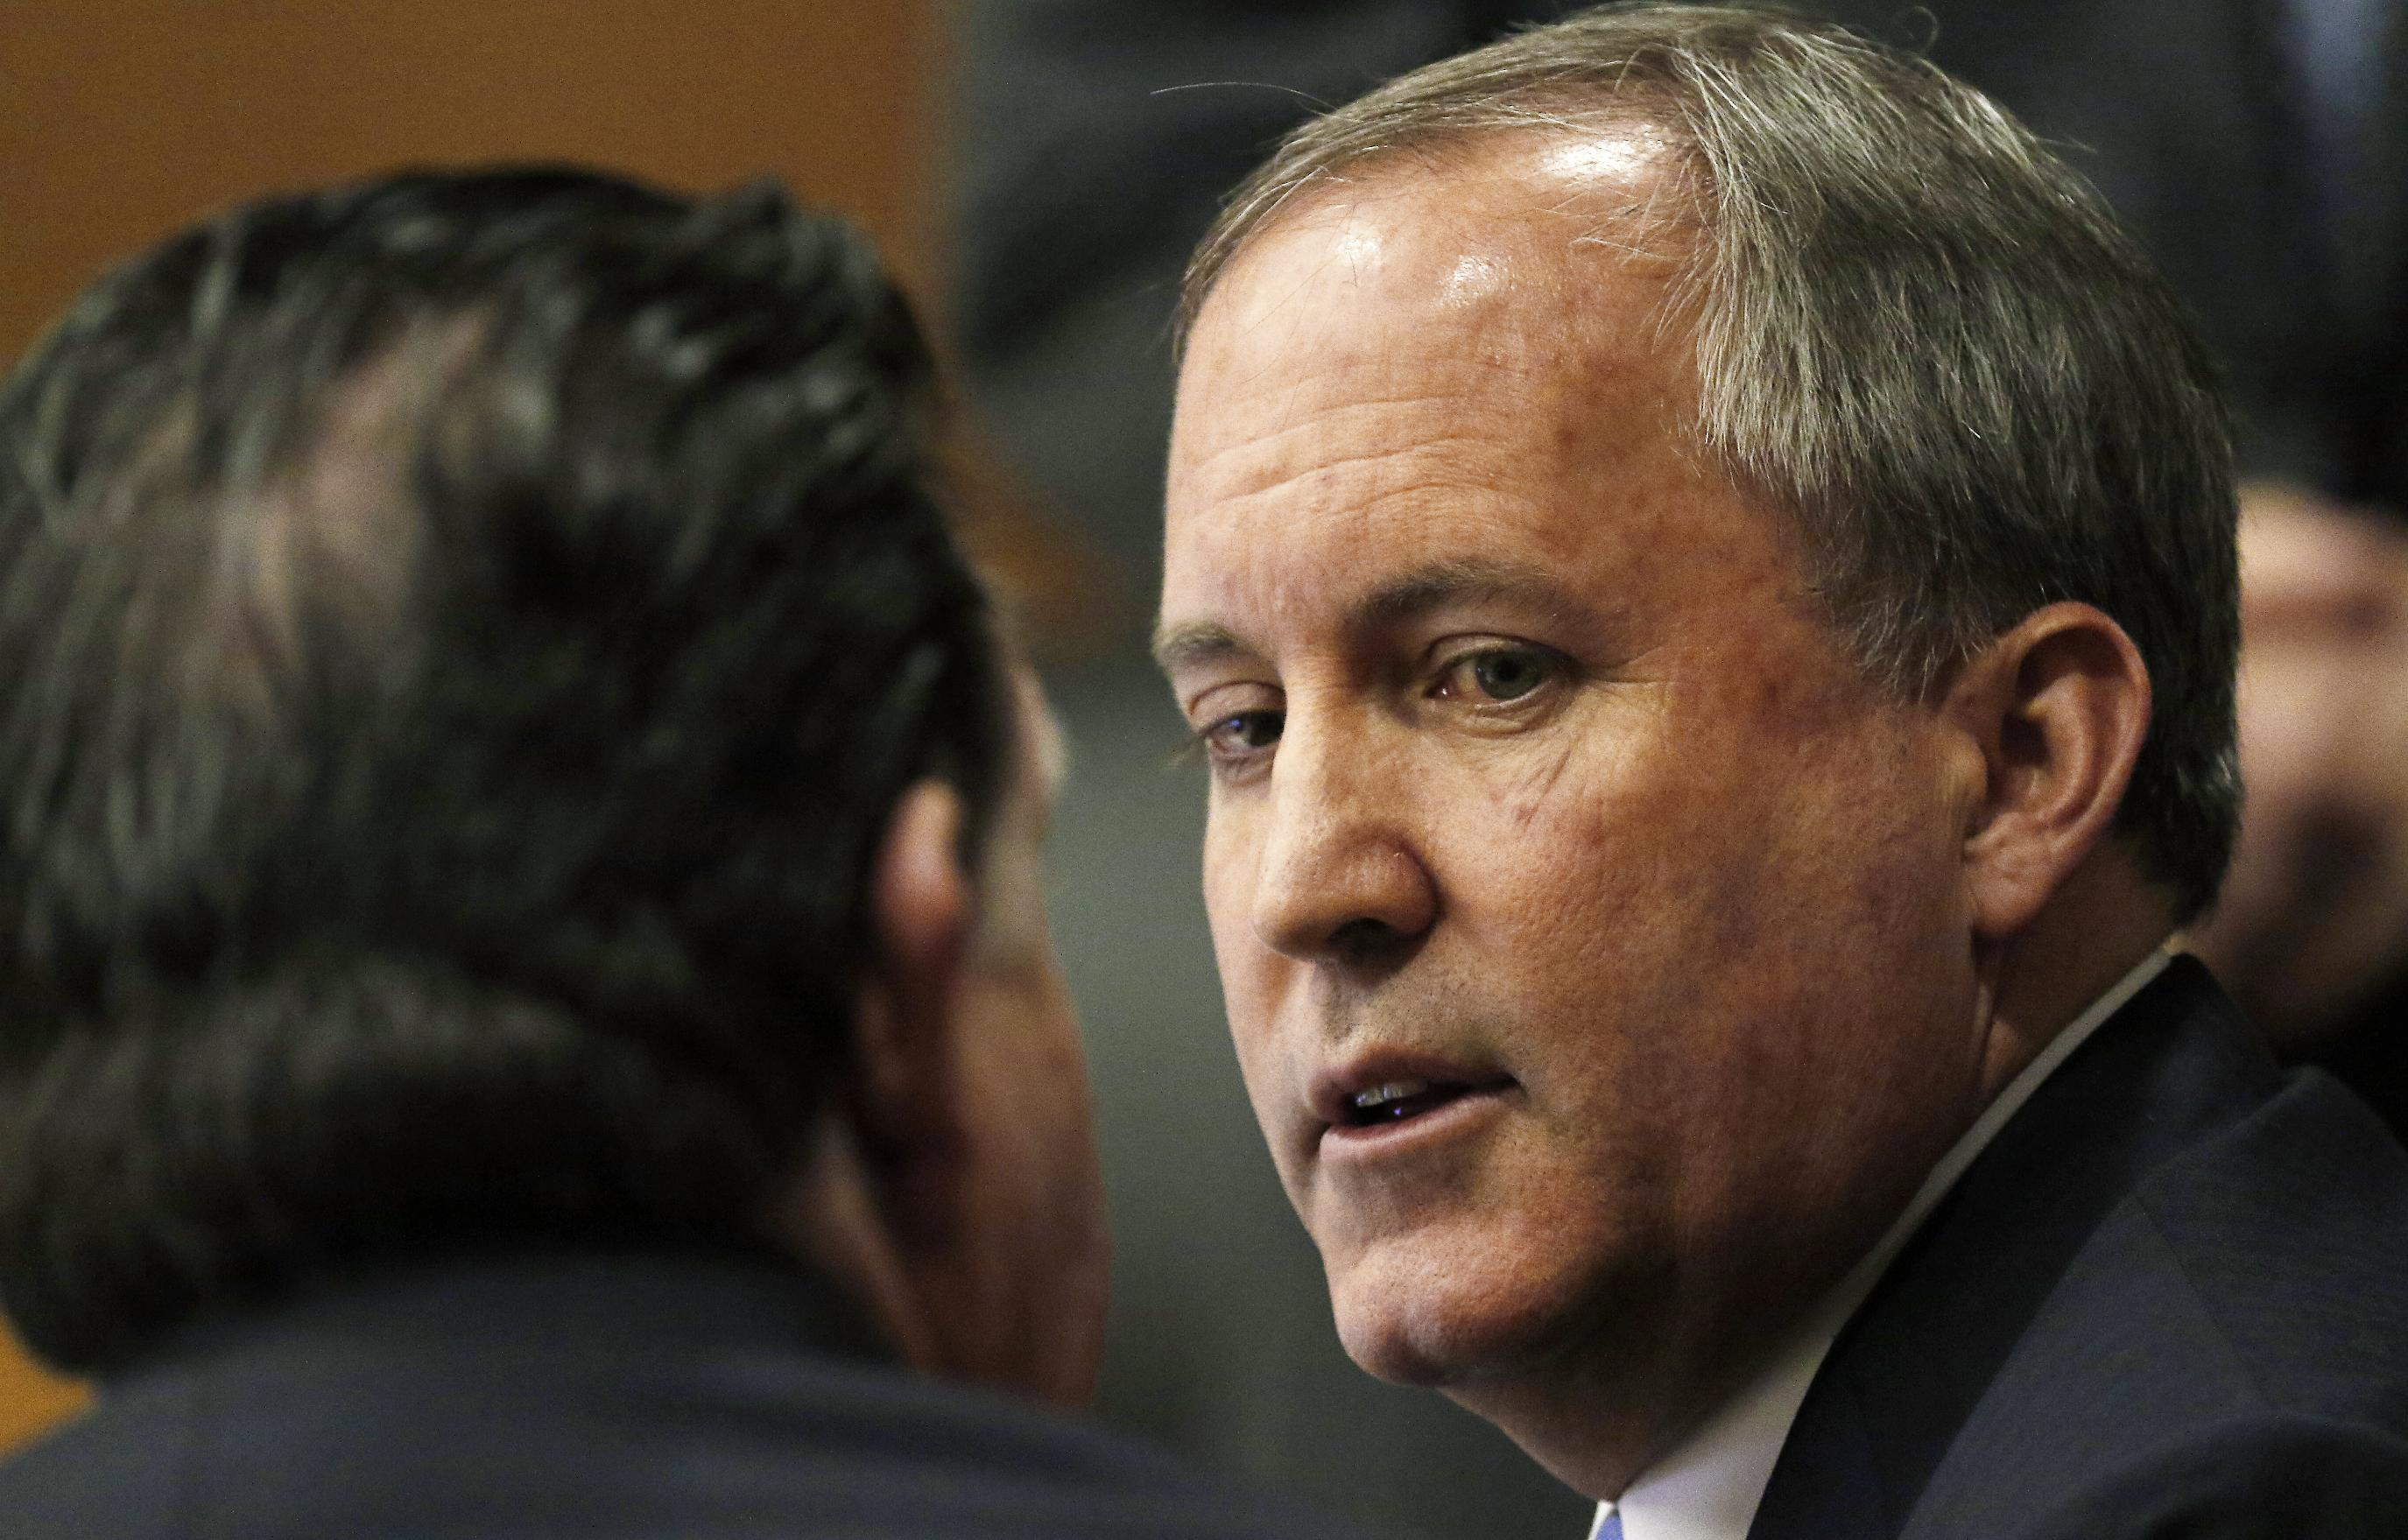 Indicted Texas attorney general asks judge to toss charges